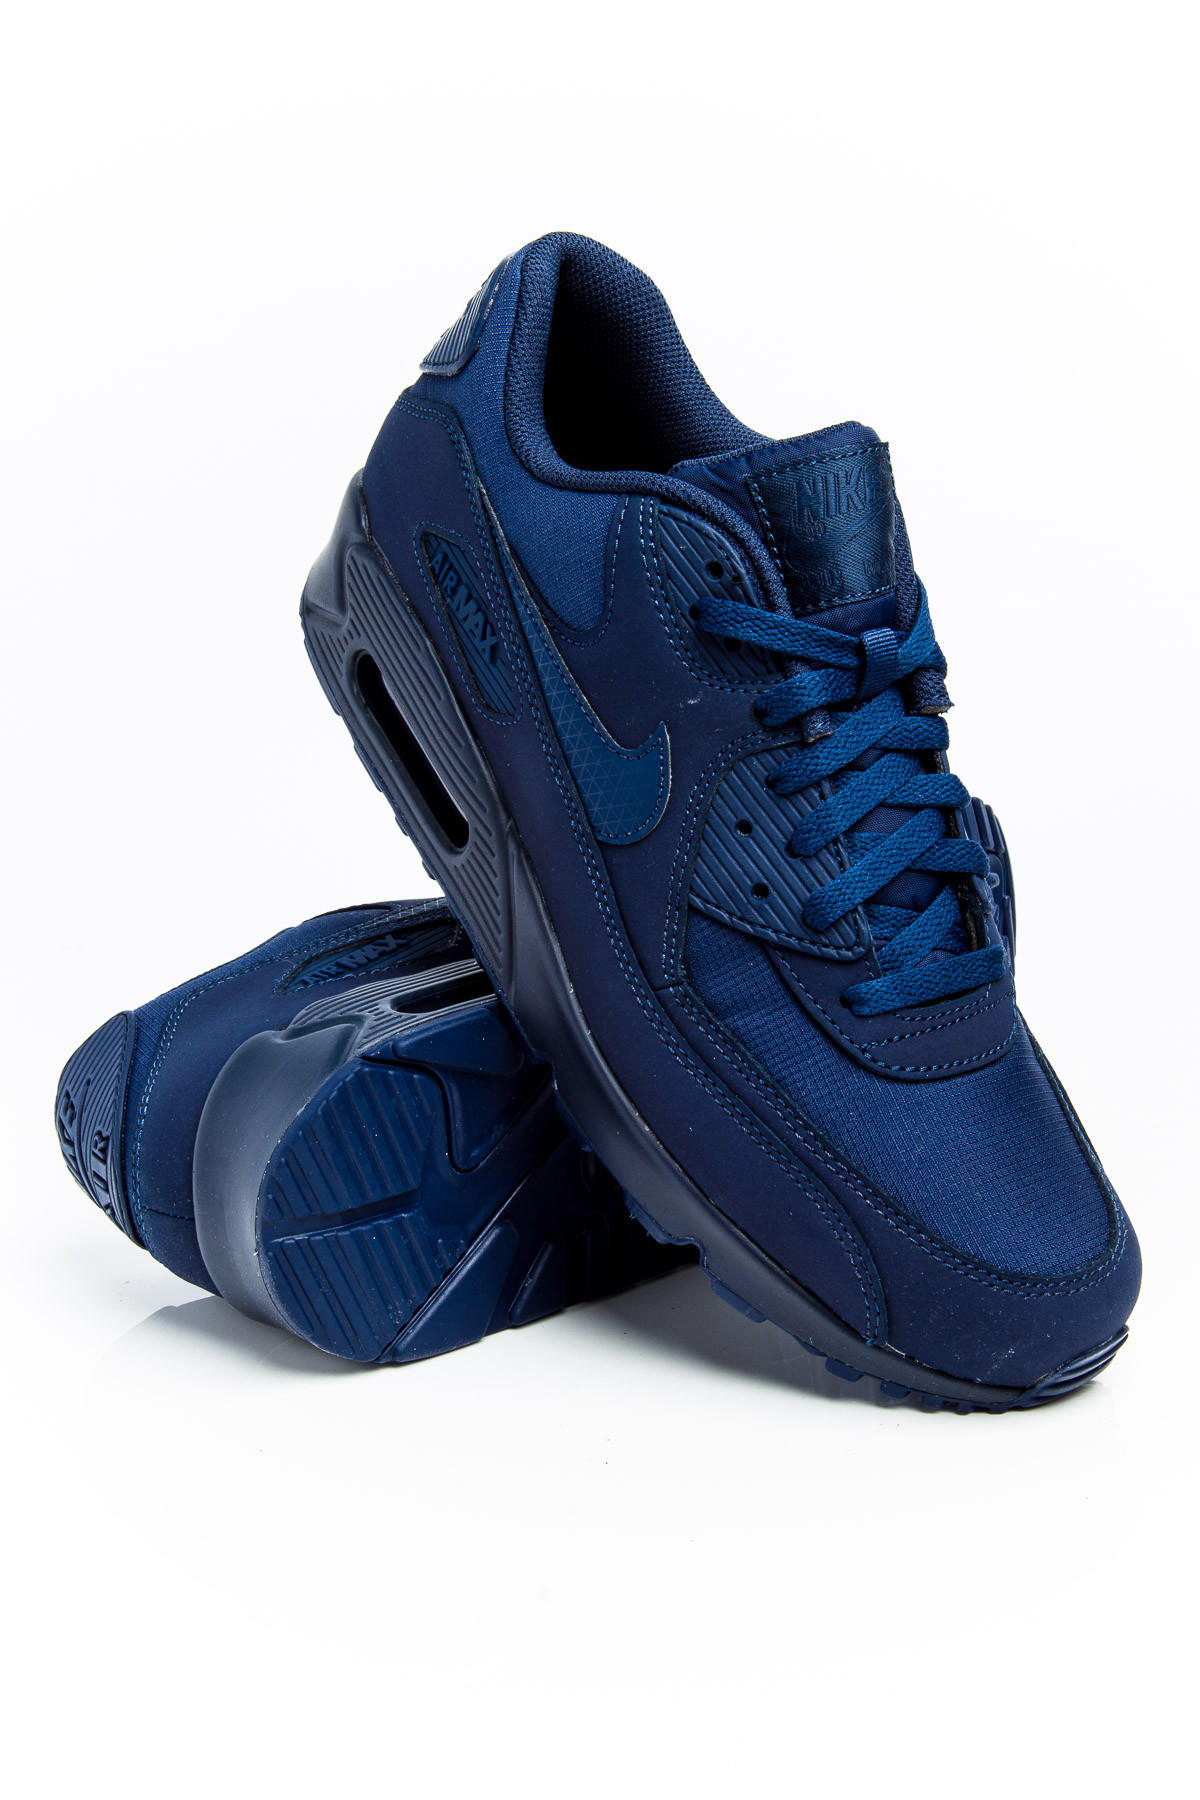 Nike Air Max 90 Essentail Midnight Navy from Probus  50b2b23afd02